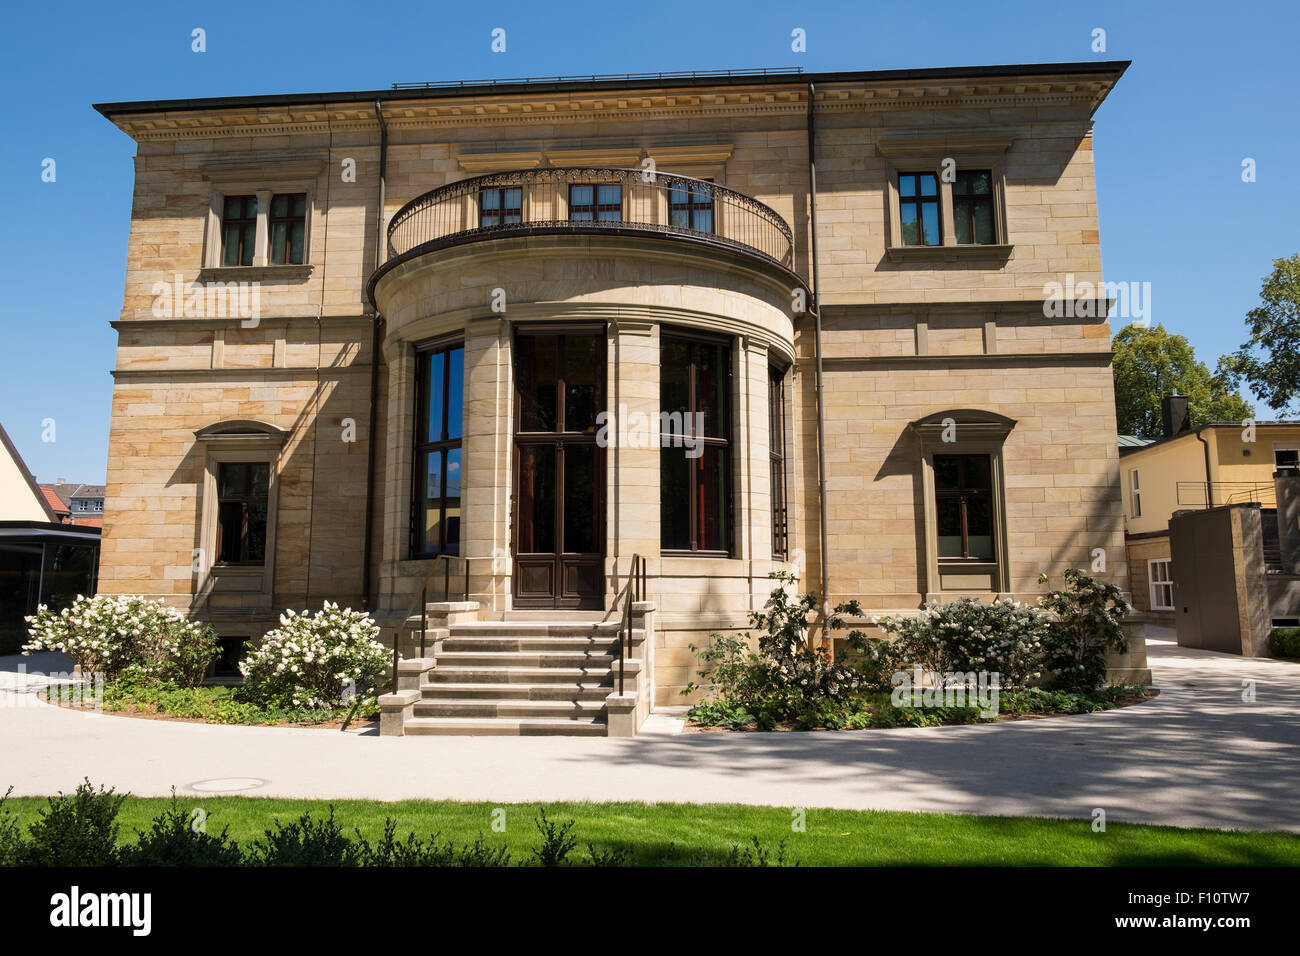 Villa Wahnfried - home of the composer Richard Wagner in the town of Bayreuth, Germany.  Now a museum. Stock Photo